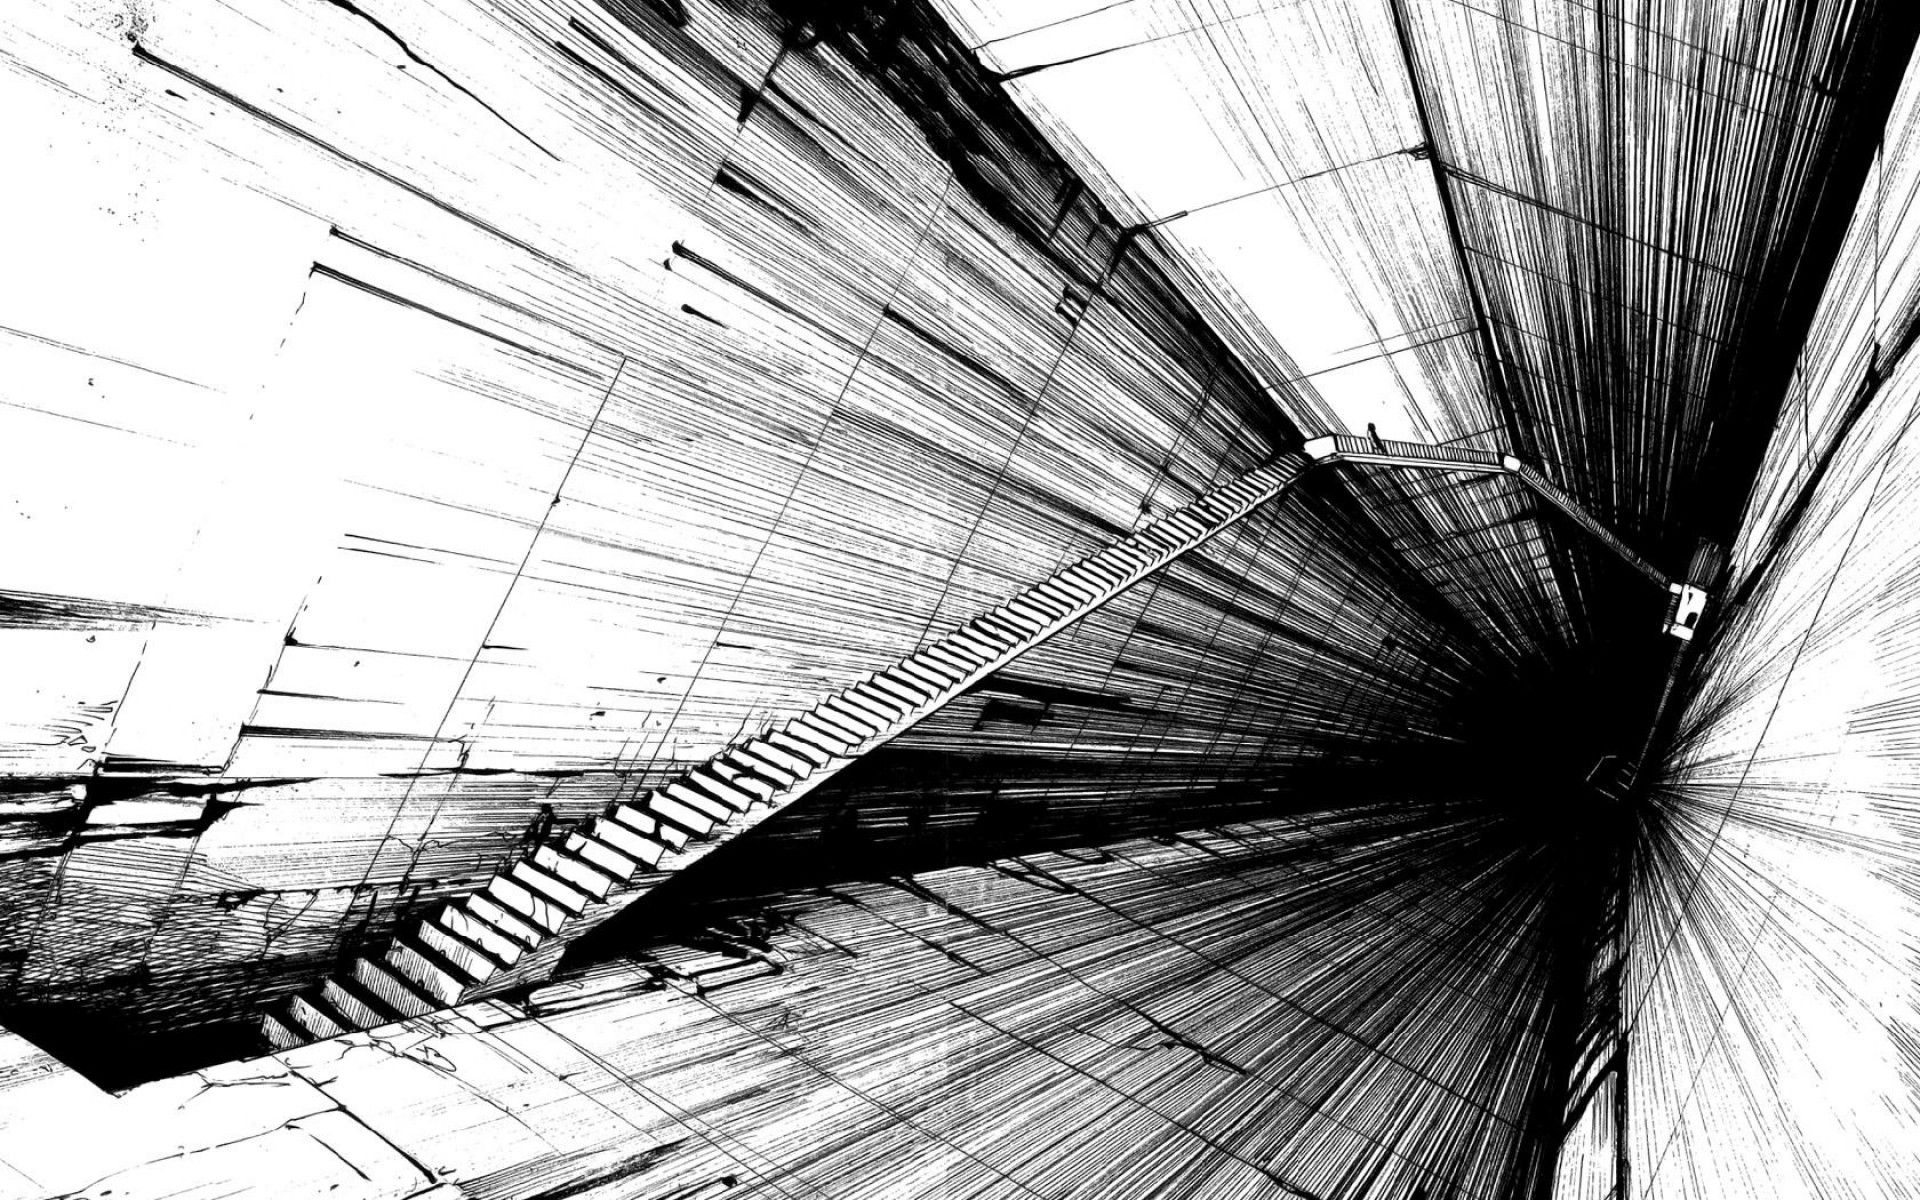 Abstract Art Wallpaper Black And White Wallpapers High Quality